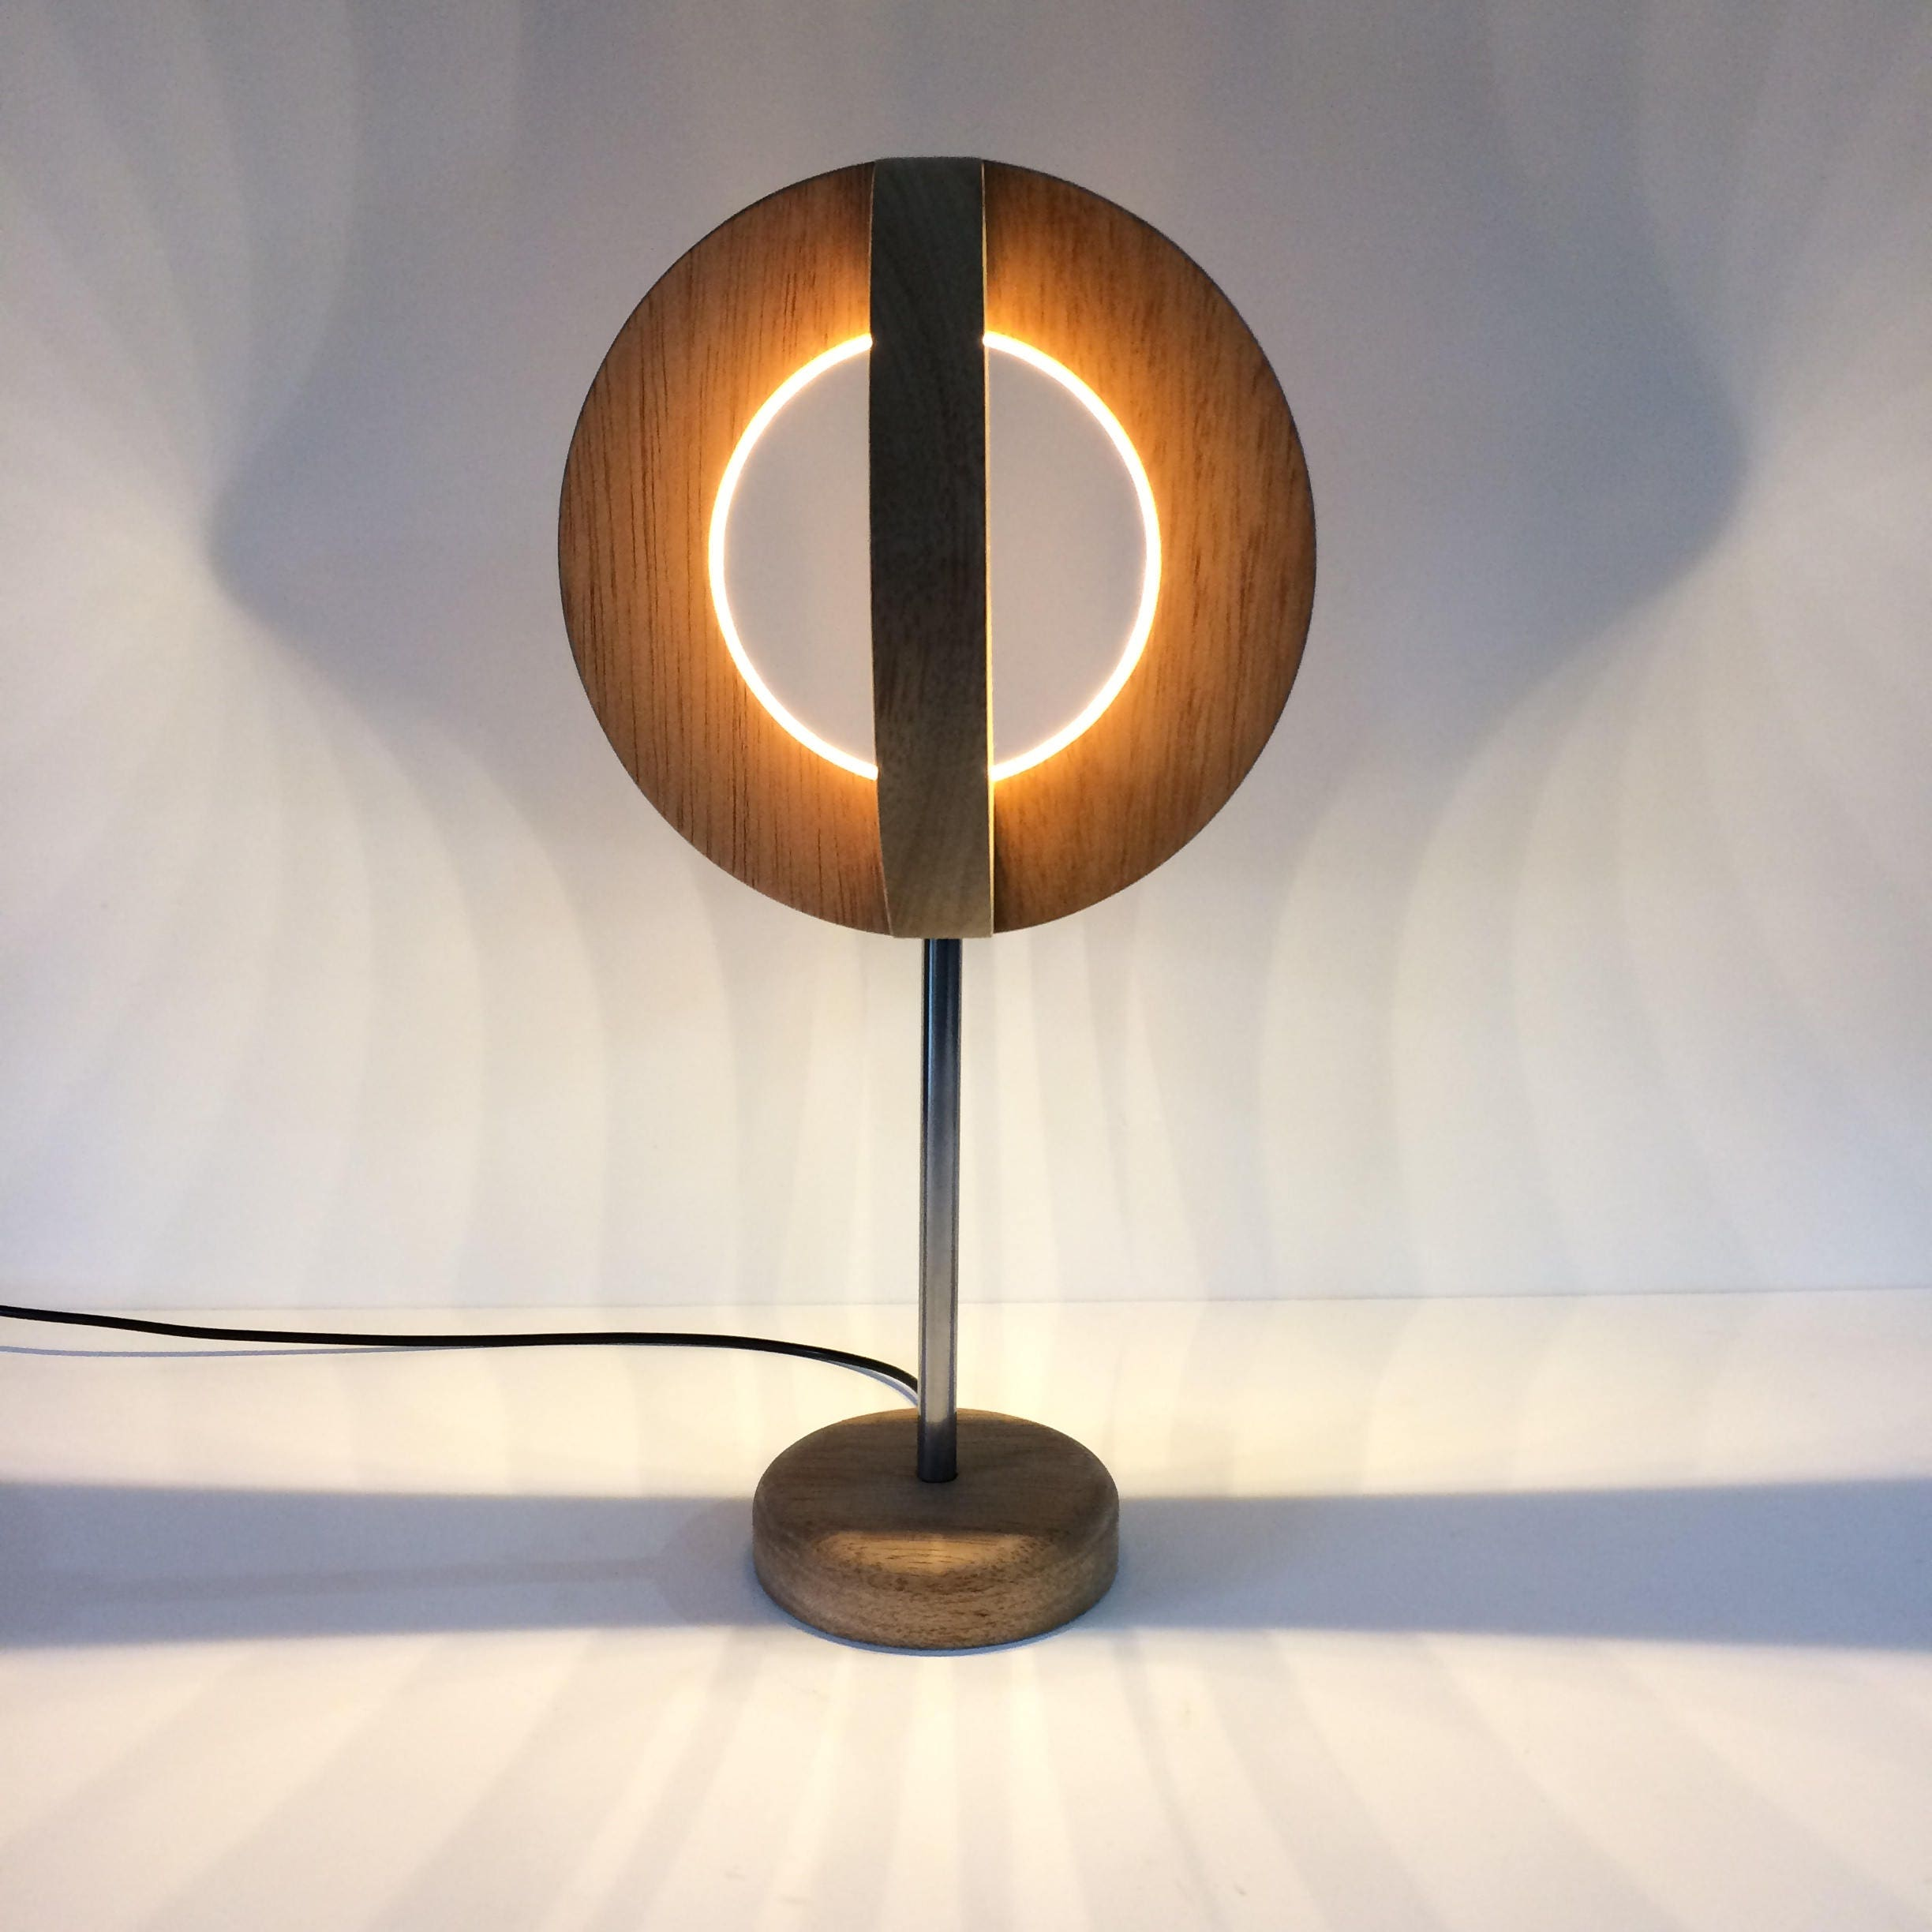 Wooden Led Table lamp Desk Lamp Modern Light Round Circular Wooden ...